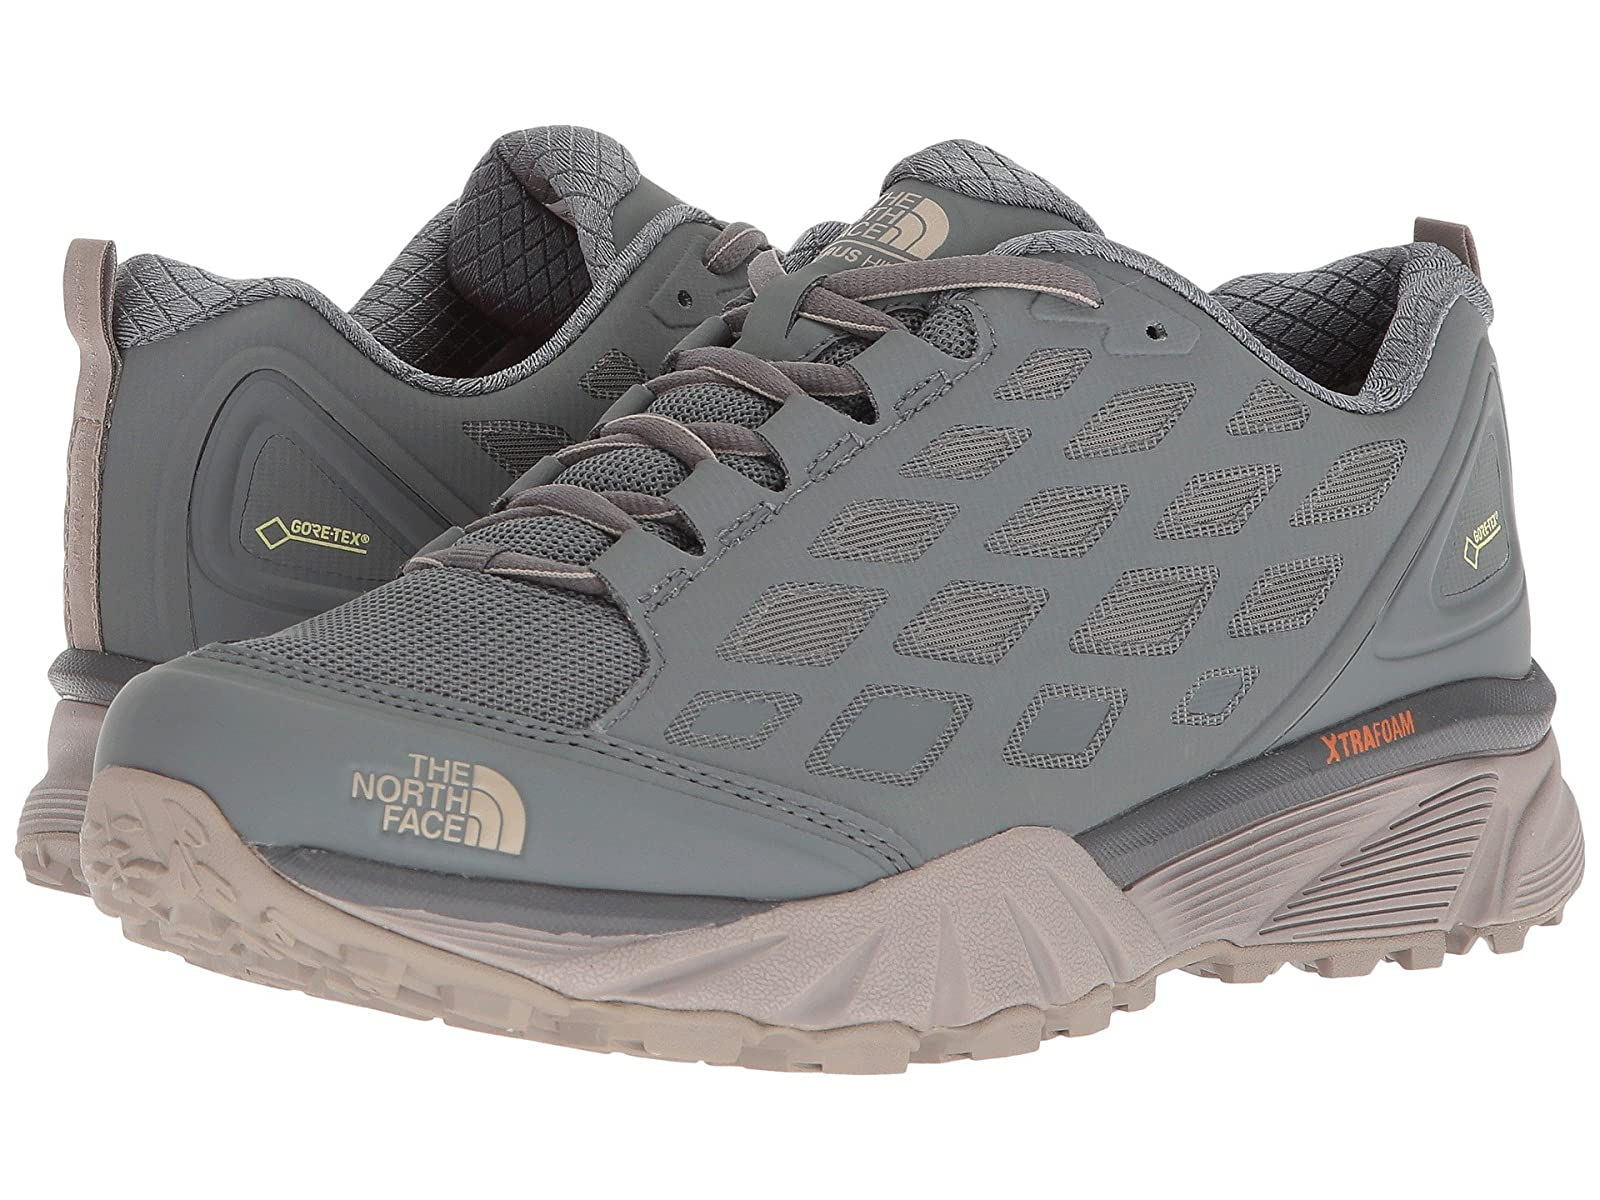 The North Face Endurus Hike GTX®Cheap and distinctive eye-catching shoes